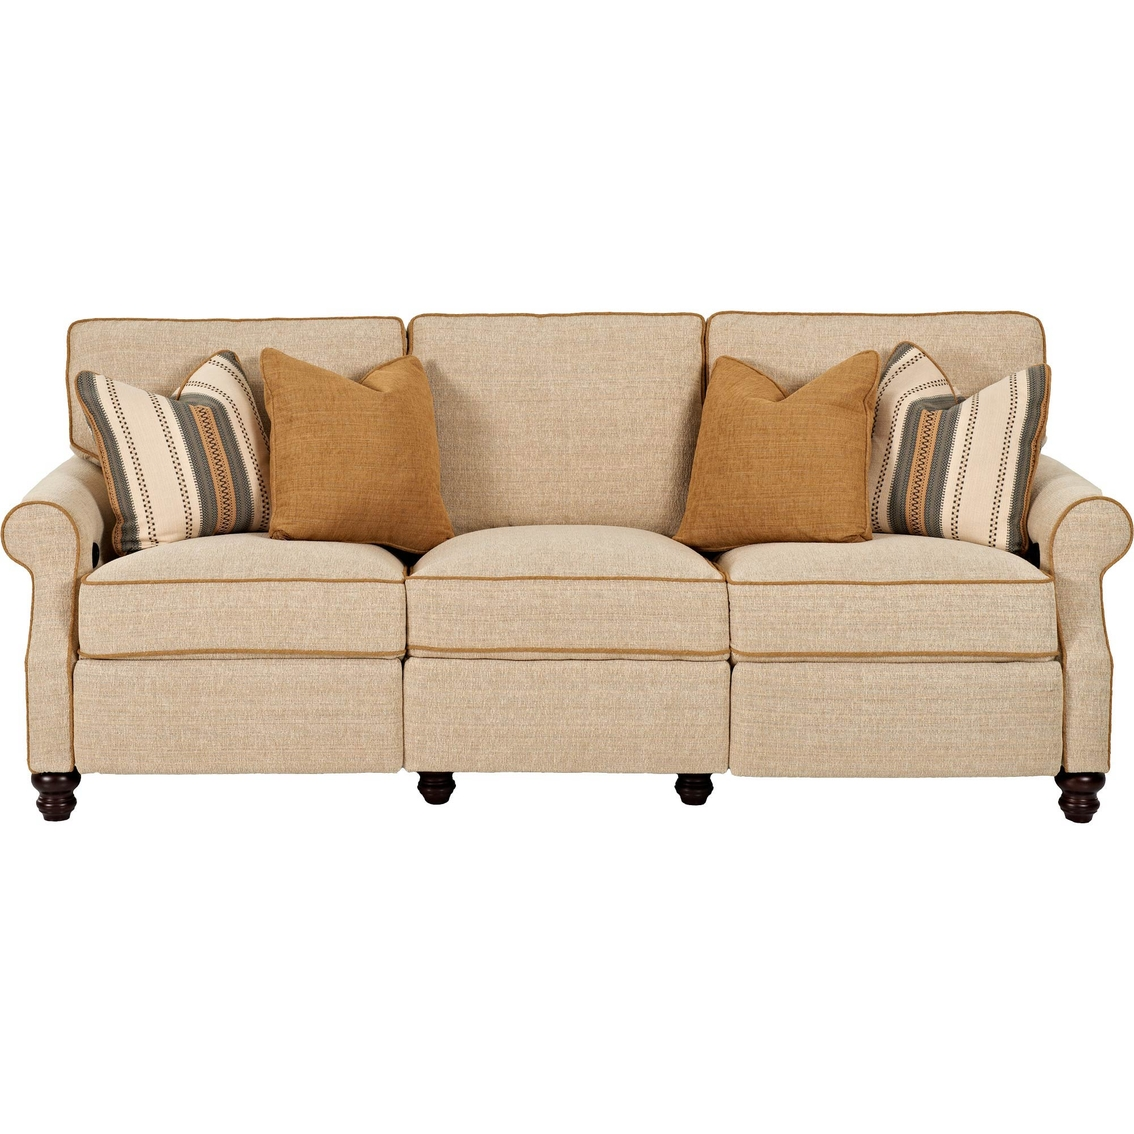 Klaussner reclining sofa best reclining sofa for the money for Klaussner sofa